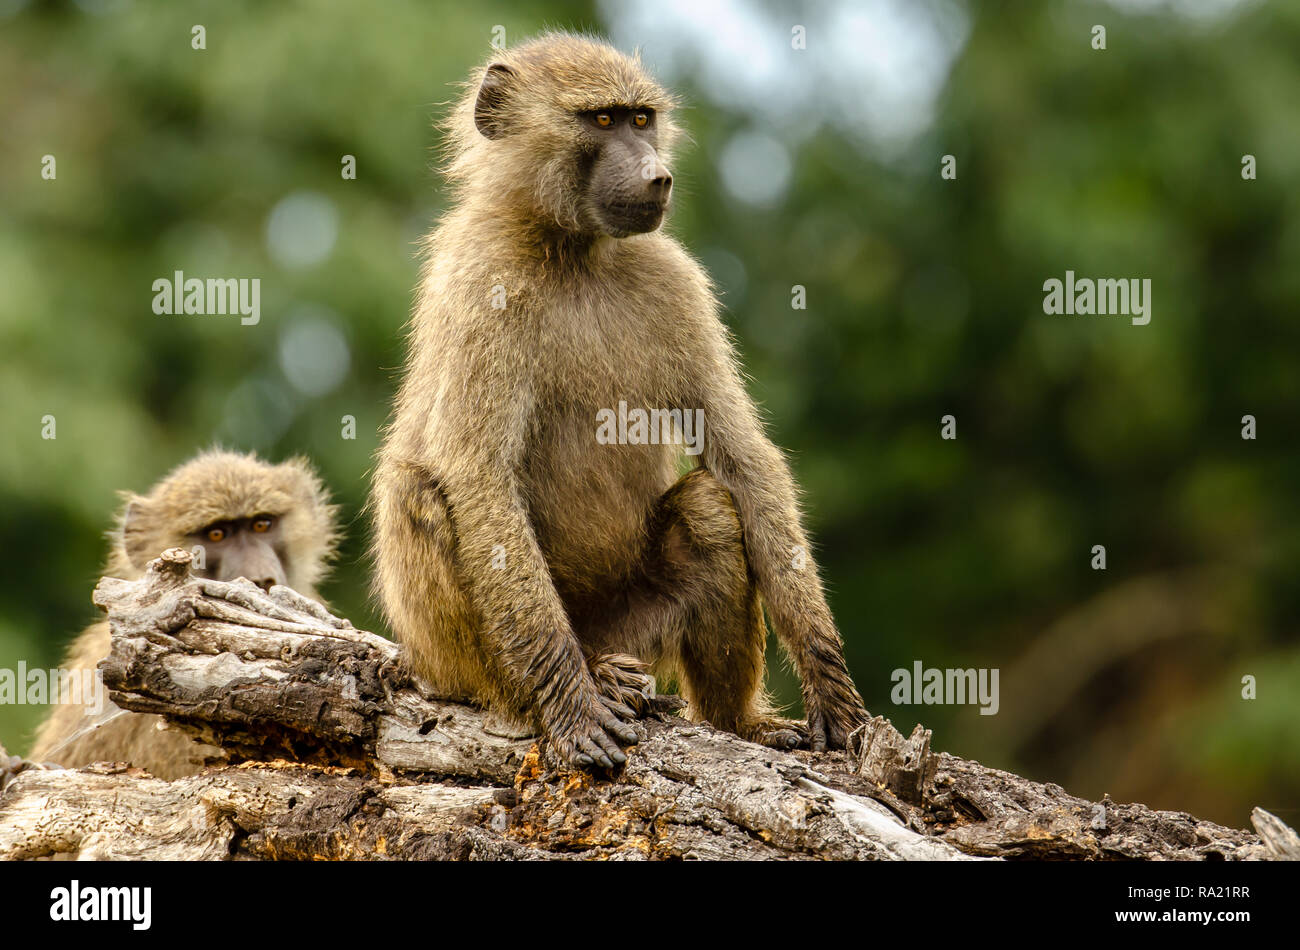 Olive baboons (Papio anubis) in Tanzania, Africa Stock Photo